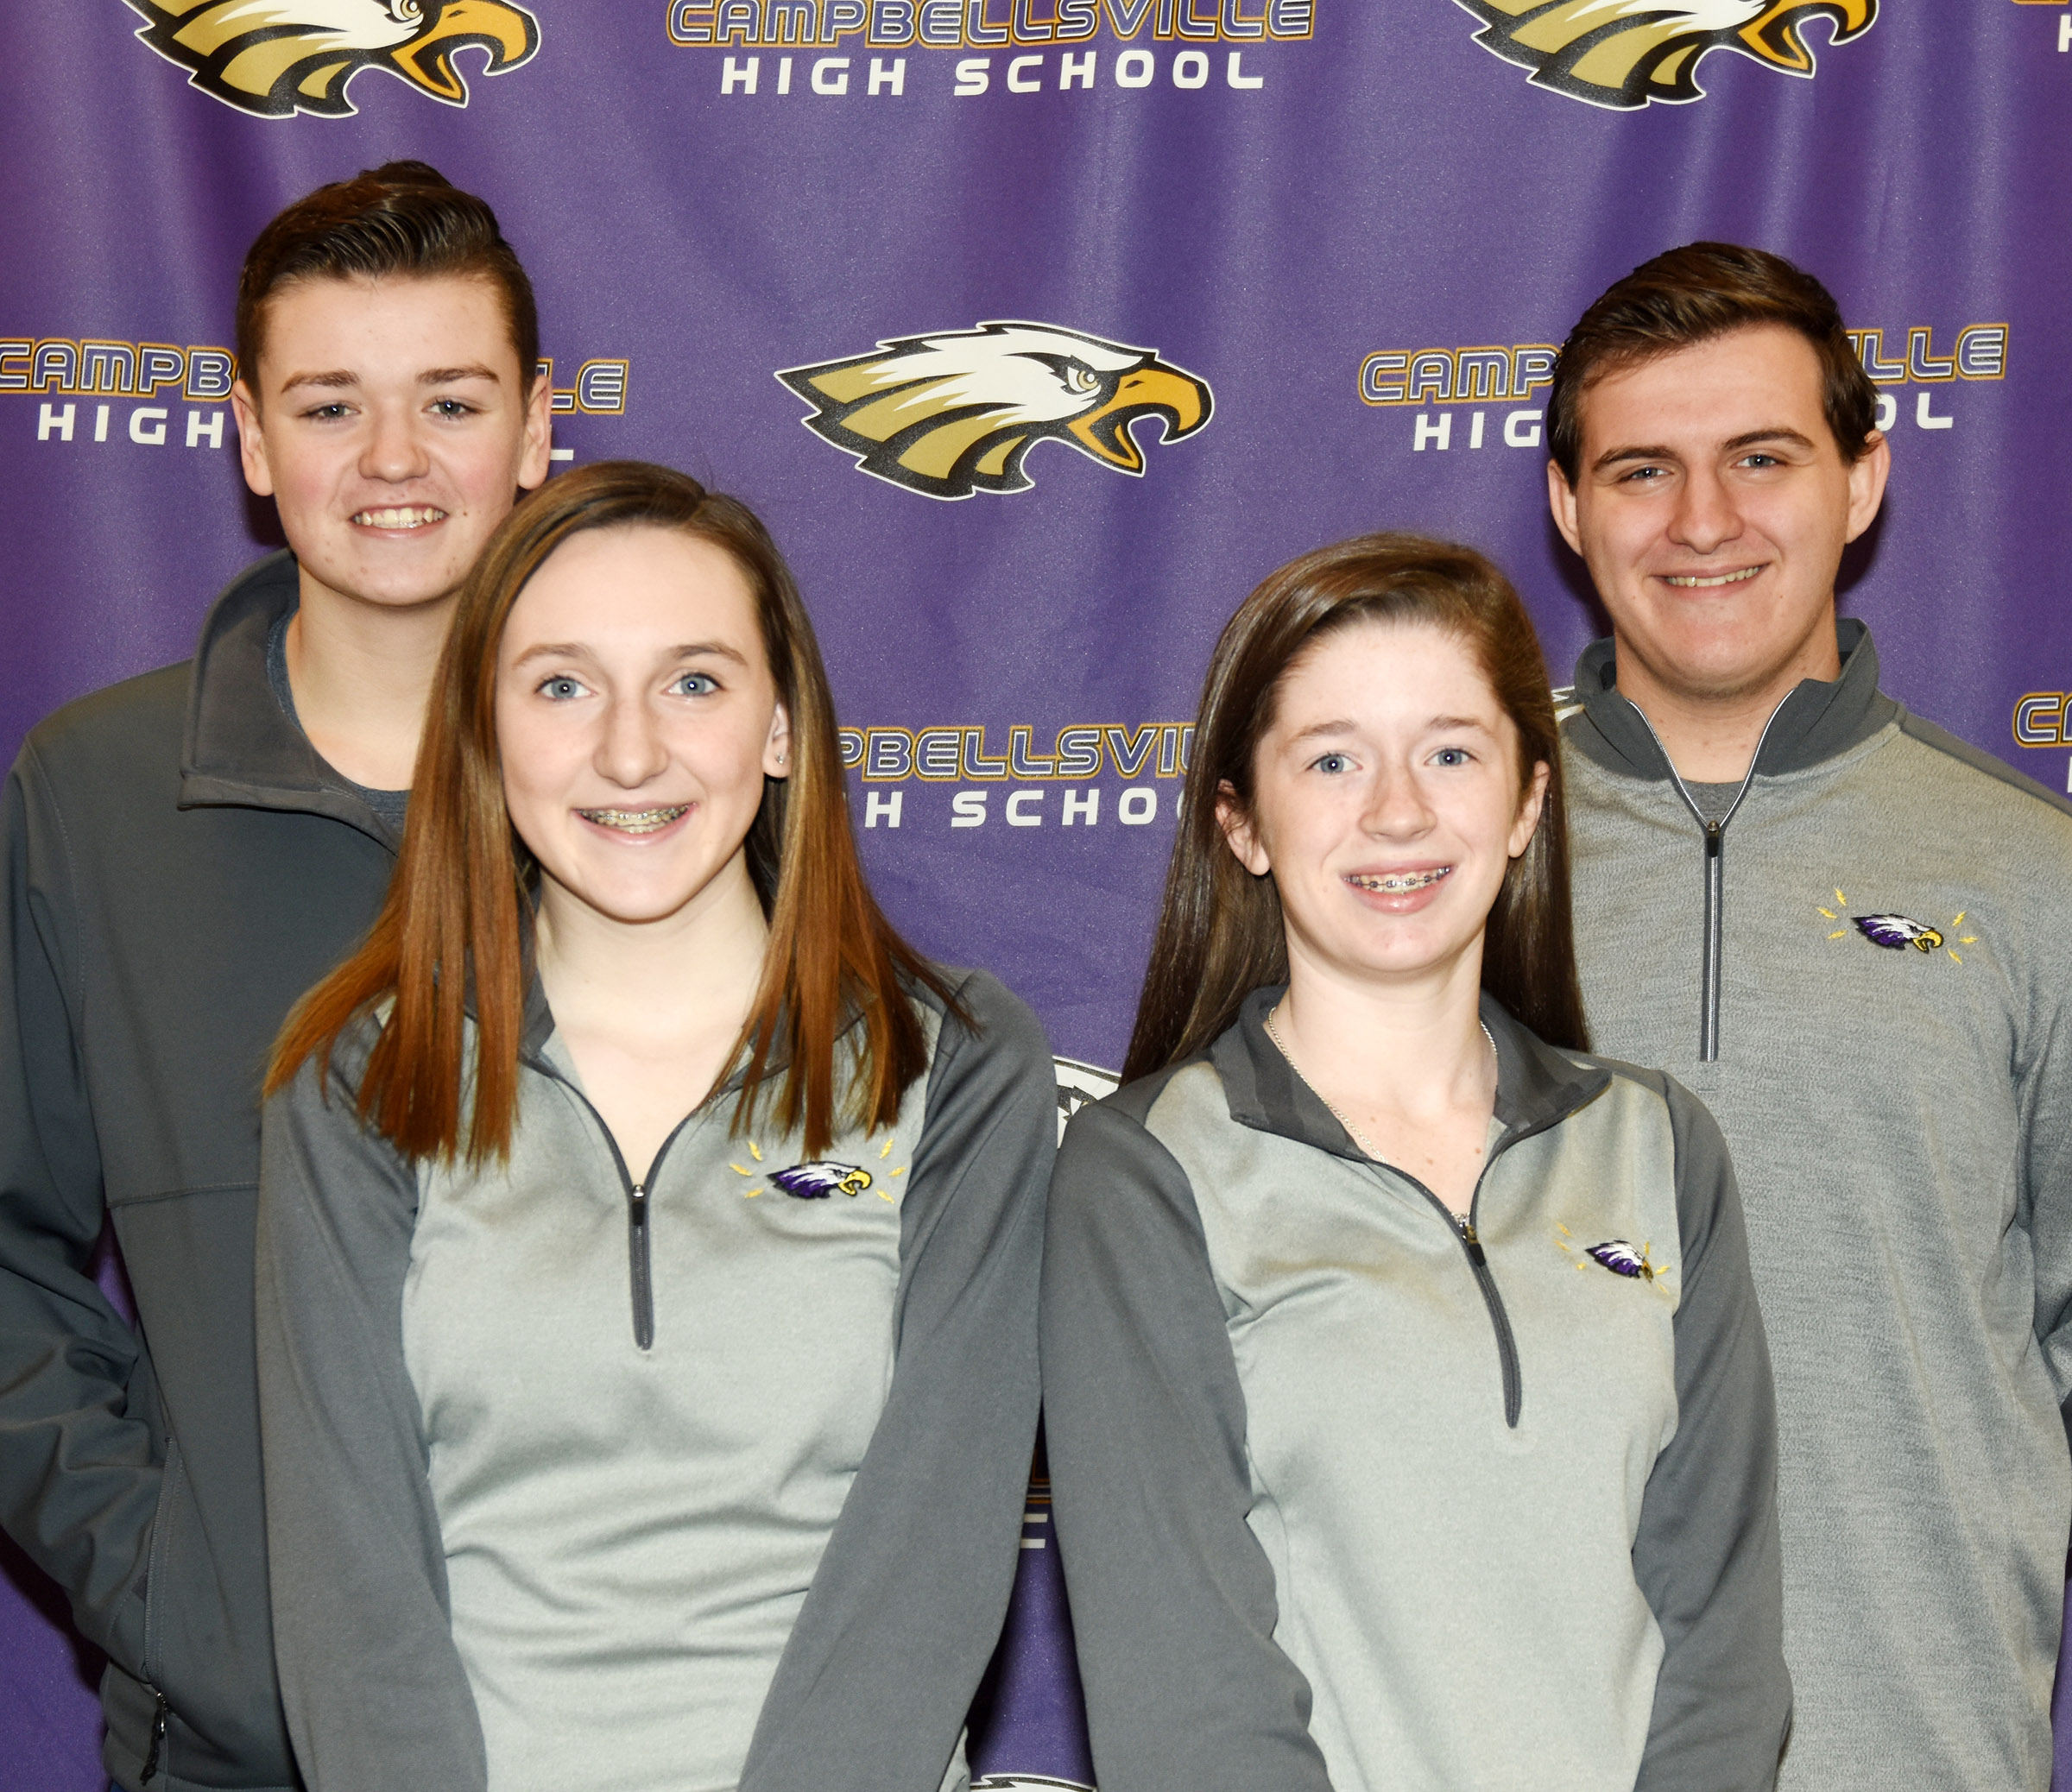 CHS News Team members for the 2017-2018 school year are, from left, front, sophomores Zoe McAninch and Gracyne Hash. Back, sophomore Gavin Johnson and senior Austin Fitzgerald.